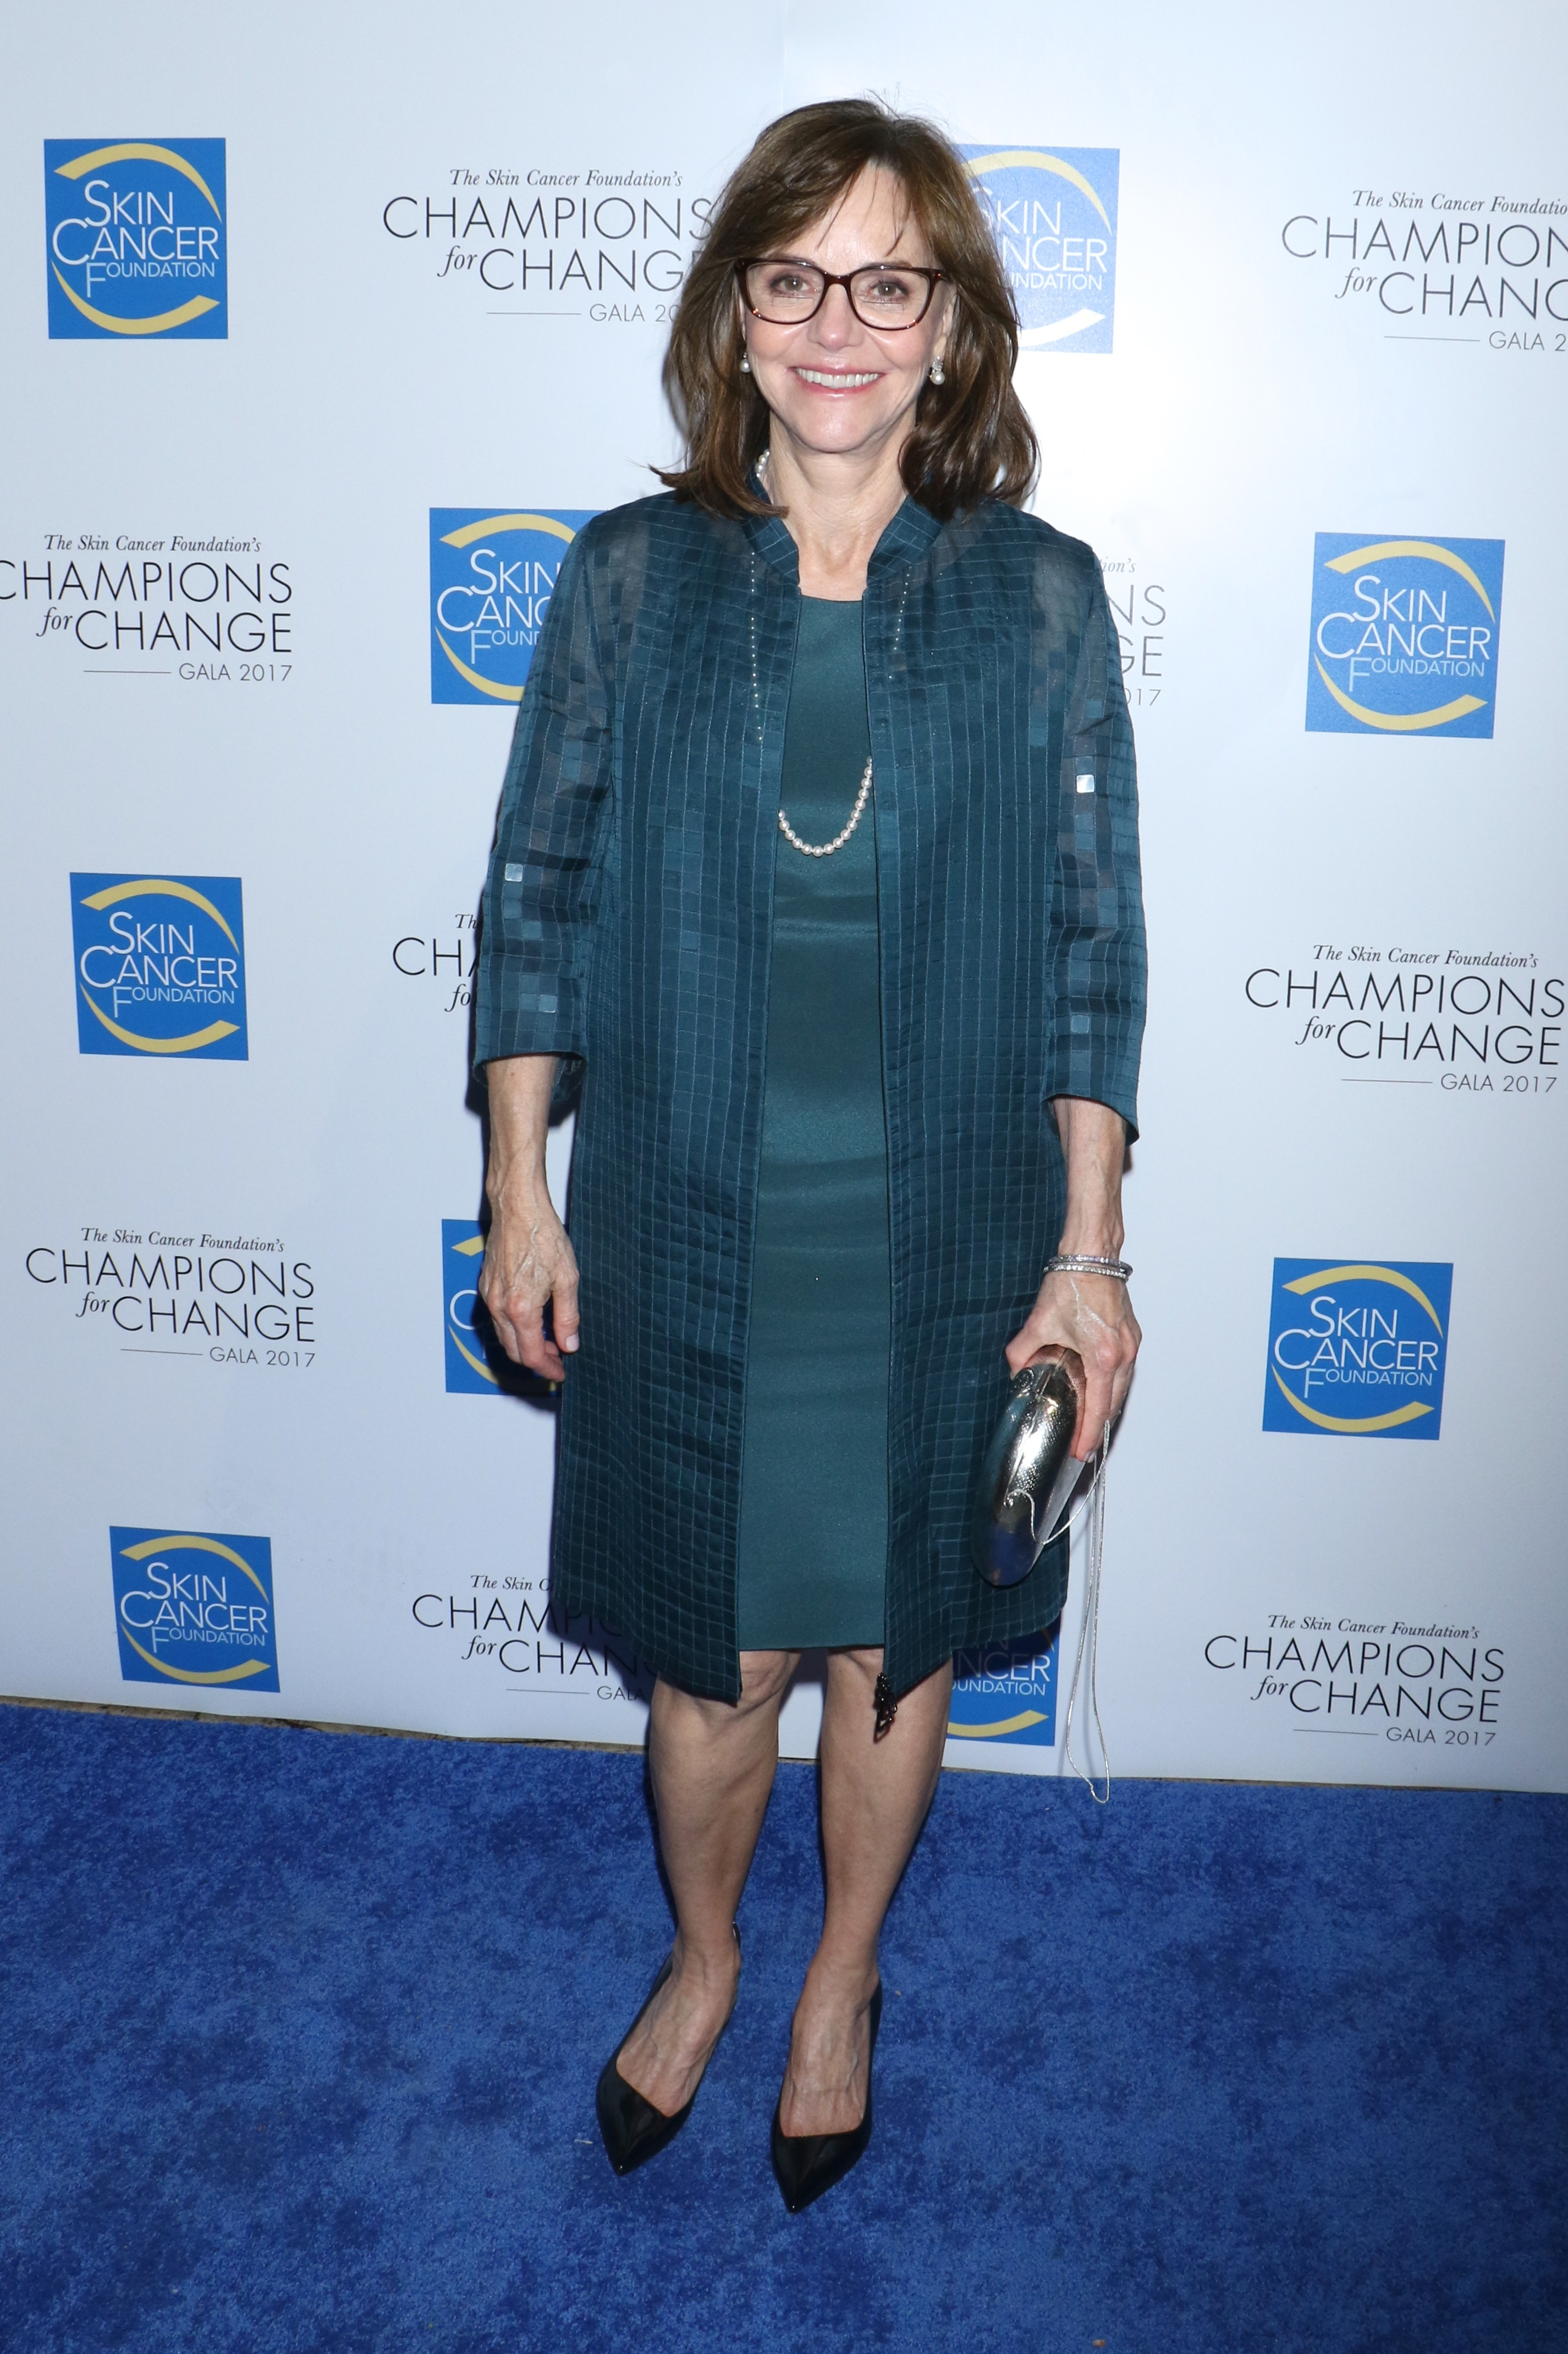 Sally Field attends The Skin Cancer Foundation's Champions for Change gala in New York City on Oct. 17, 2017.